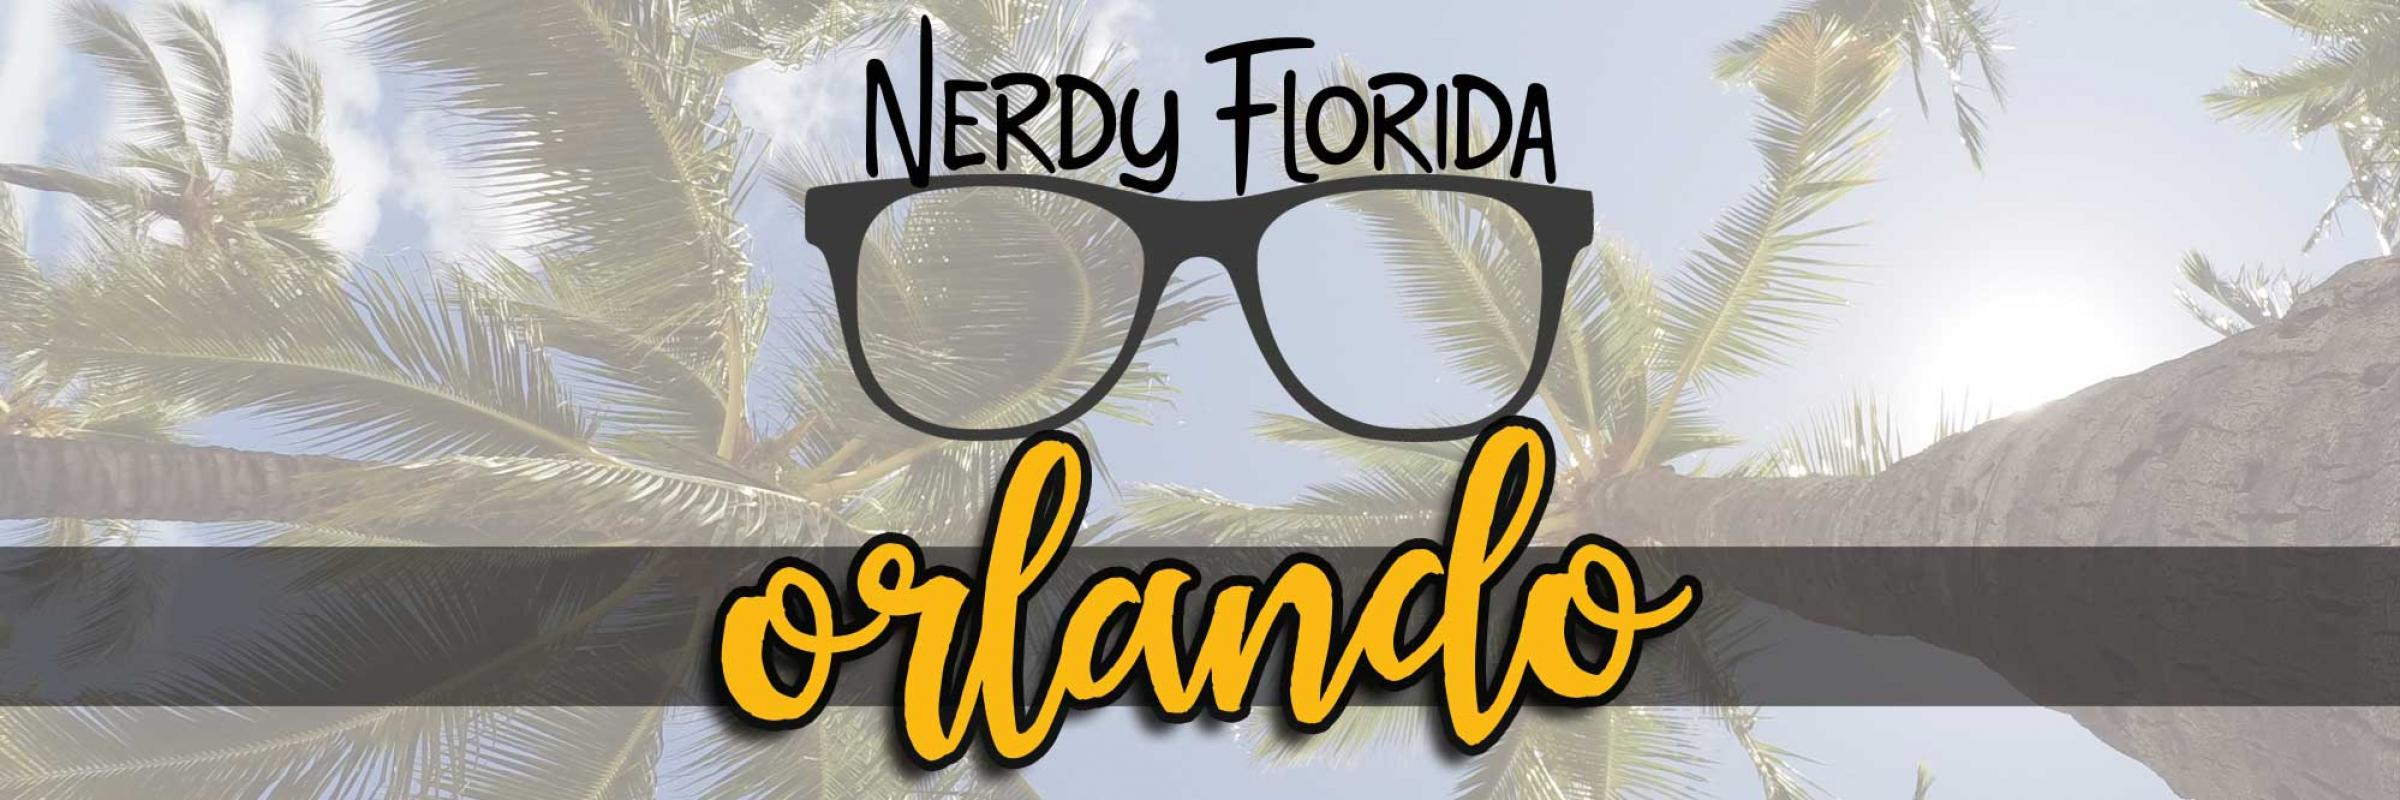 nerdy things to do in Orlando